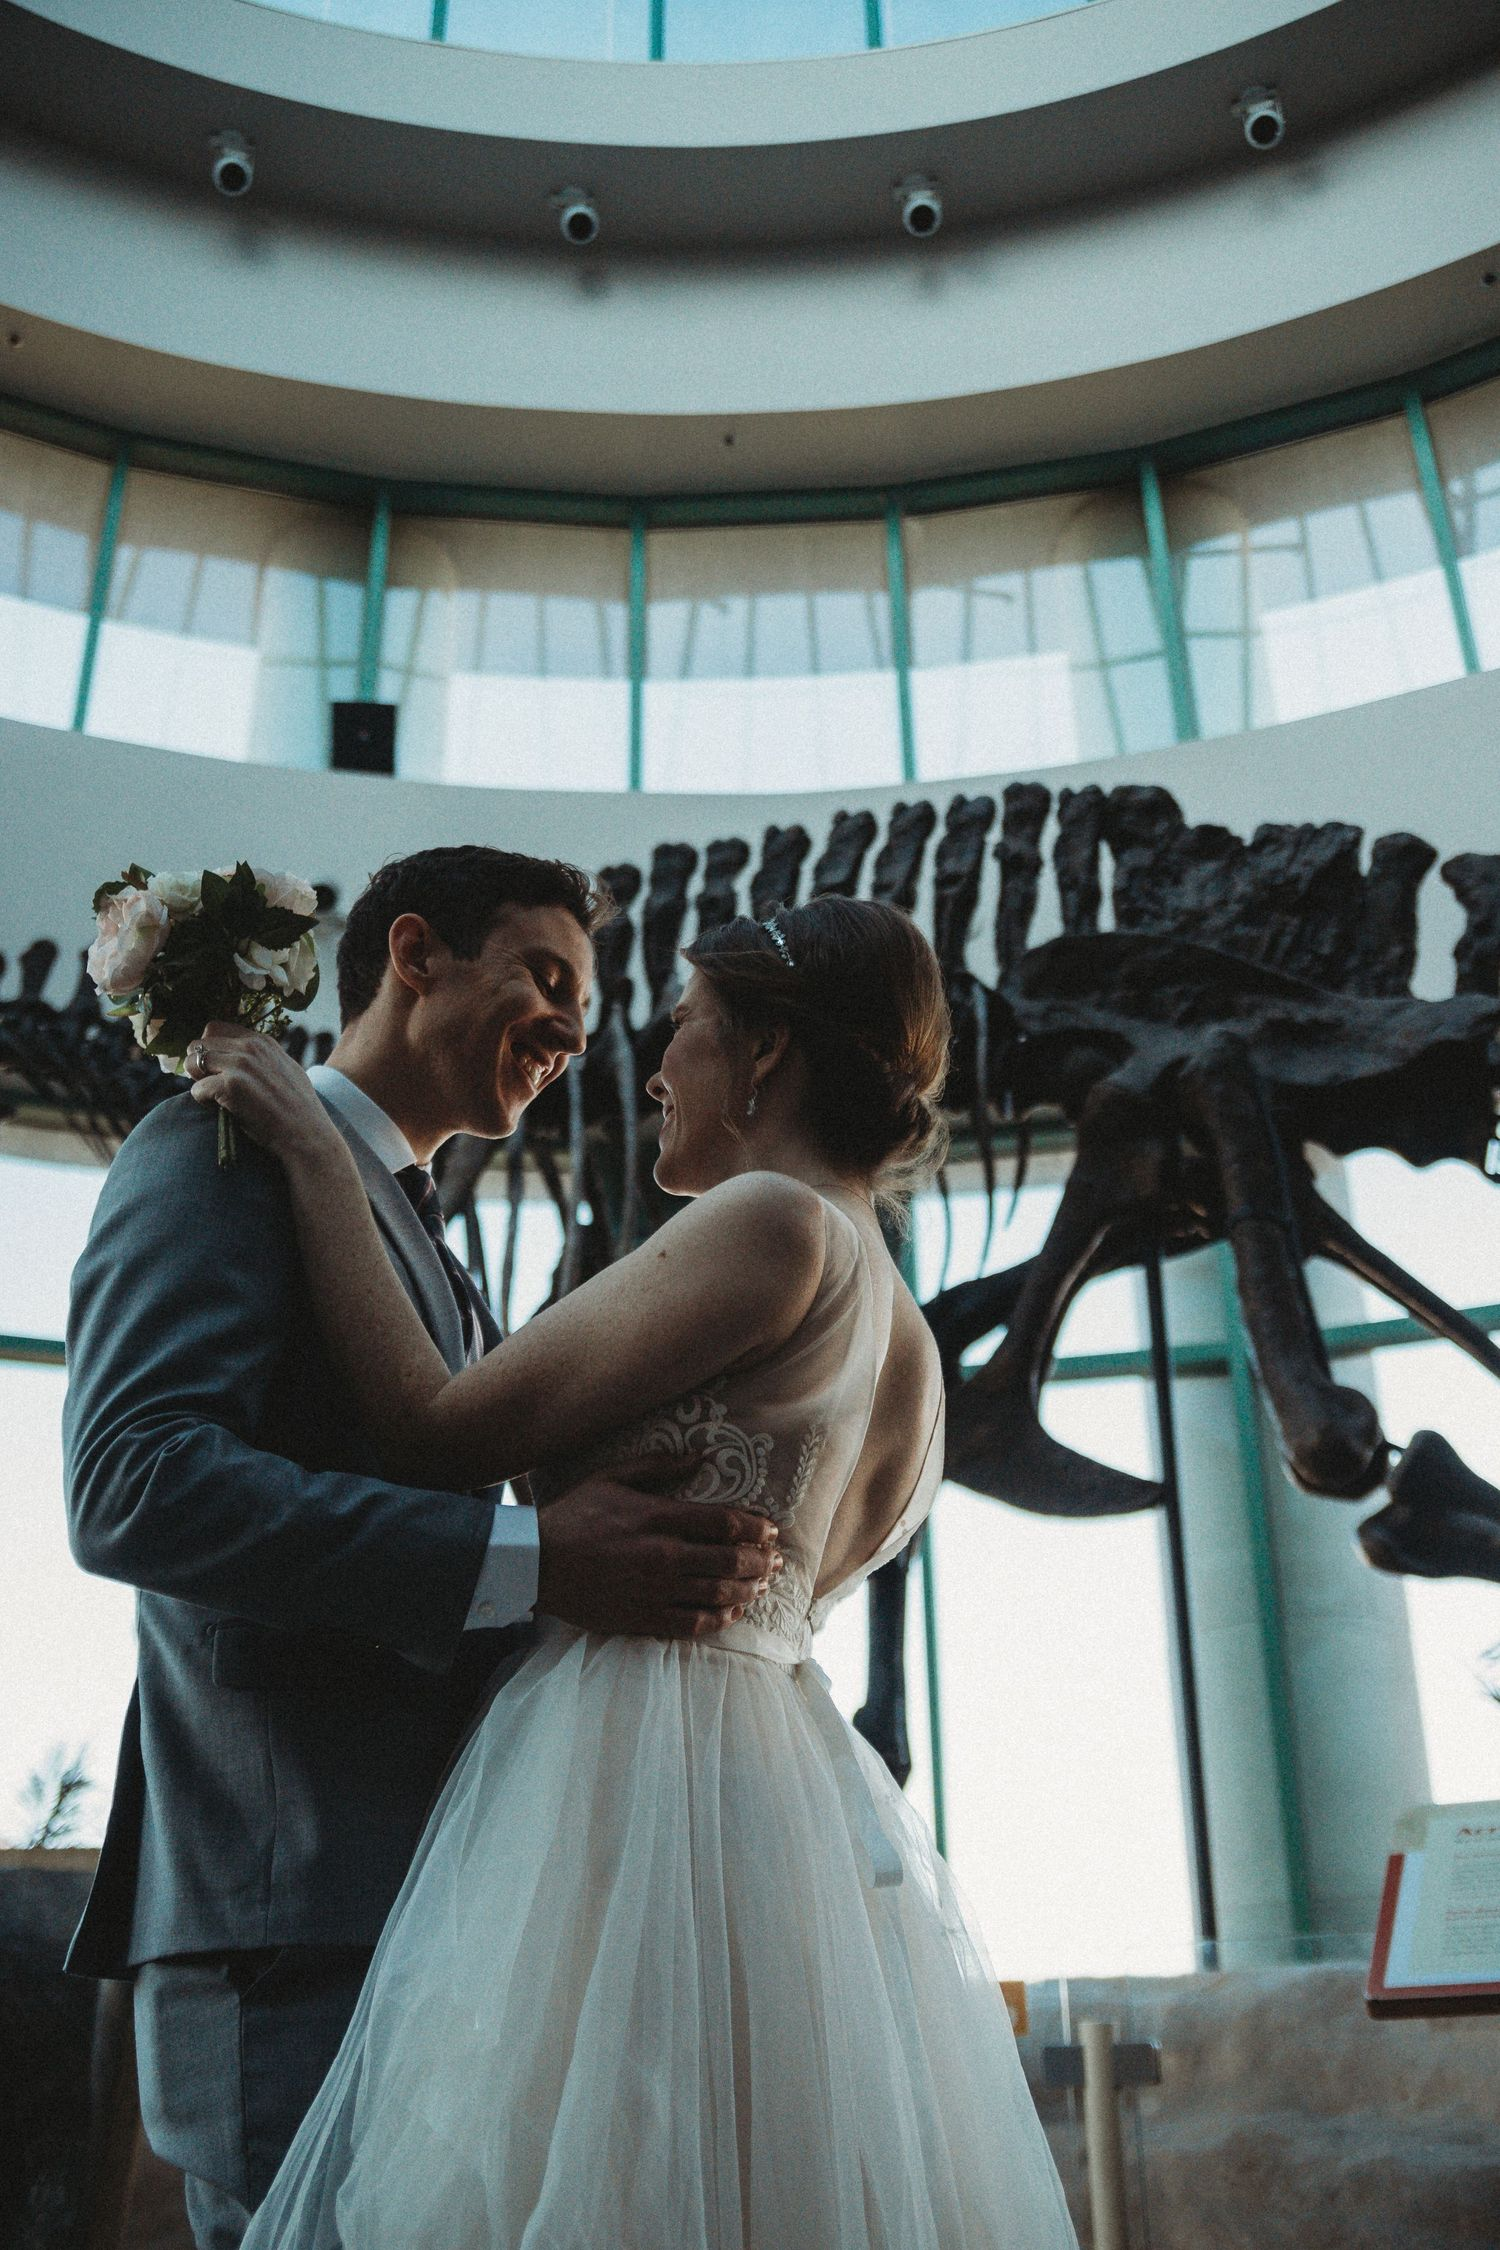 dinosaur bones behind bride and groom as they look at each other